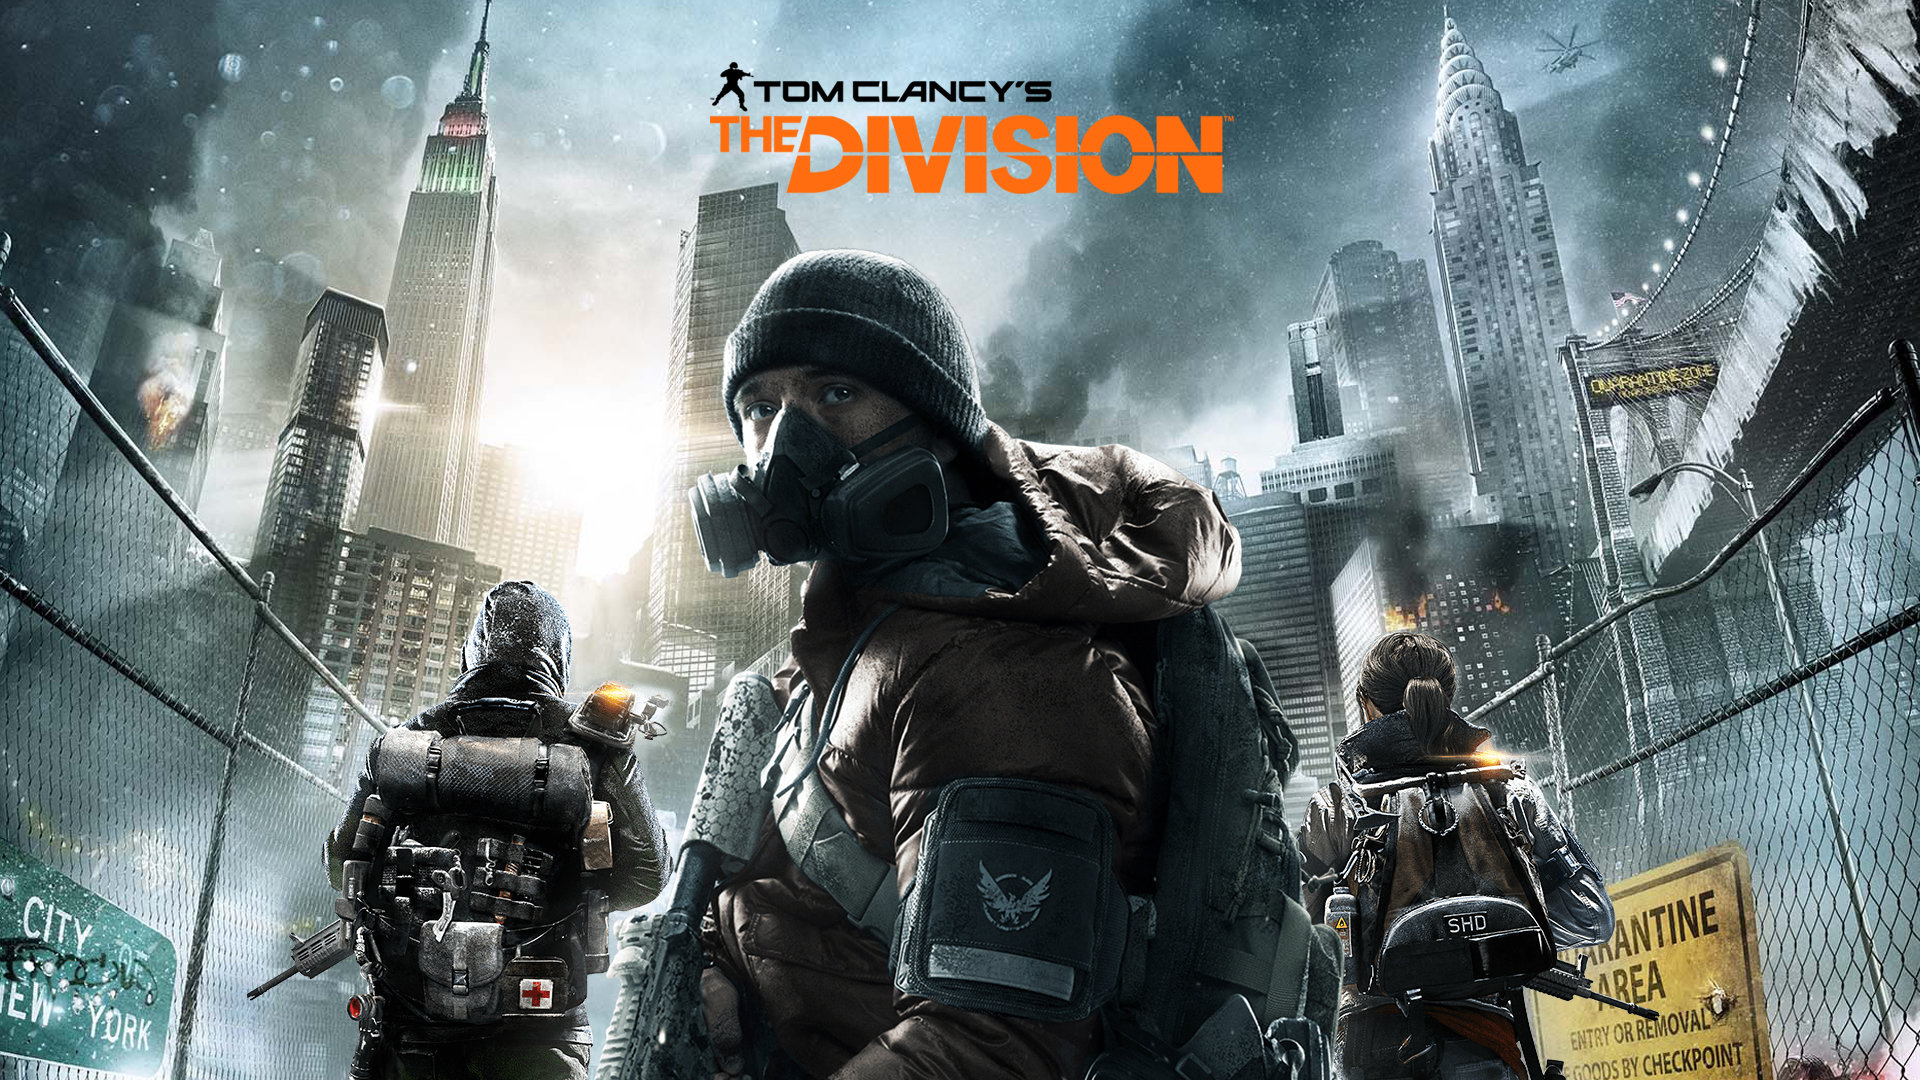 Best Tom Clancys The Division Wallpaper Id450068 For High